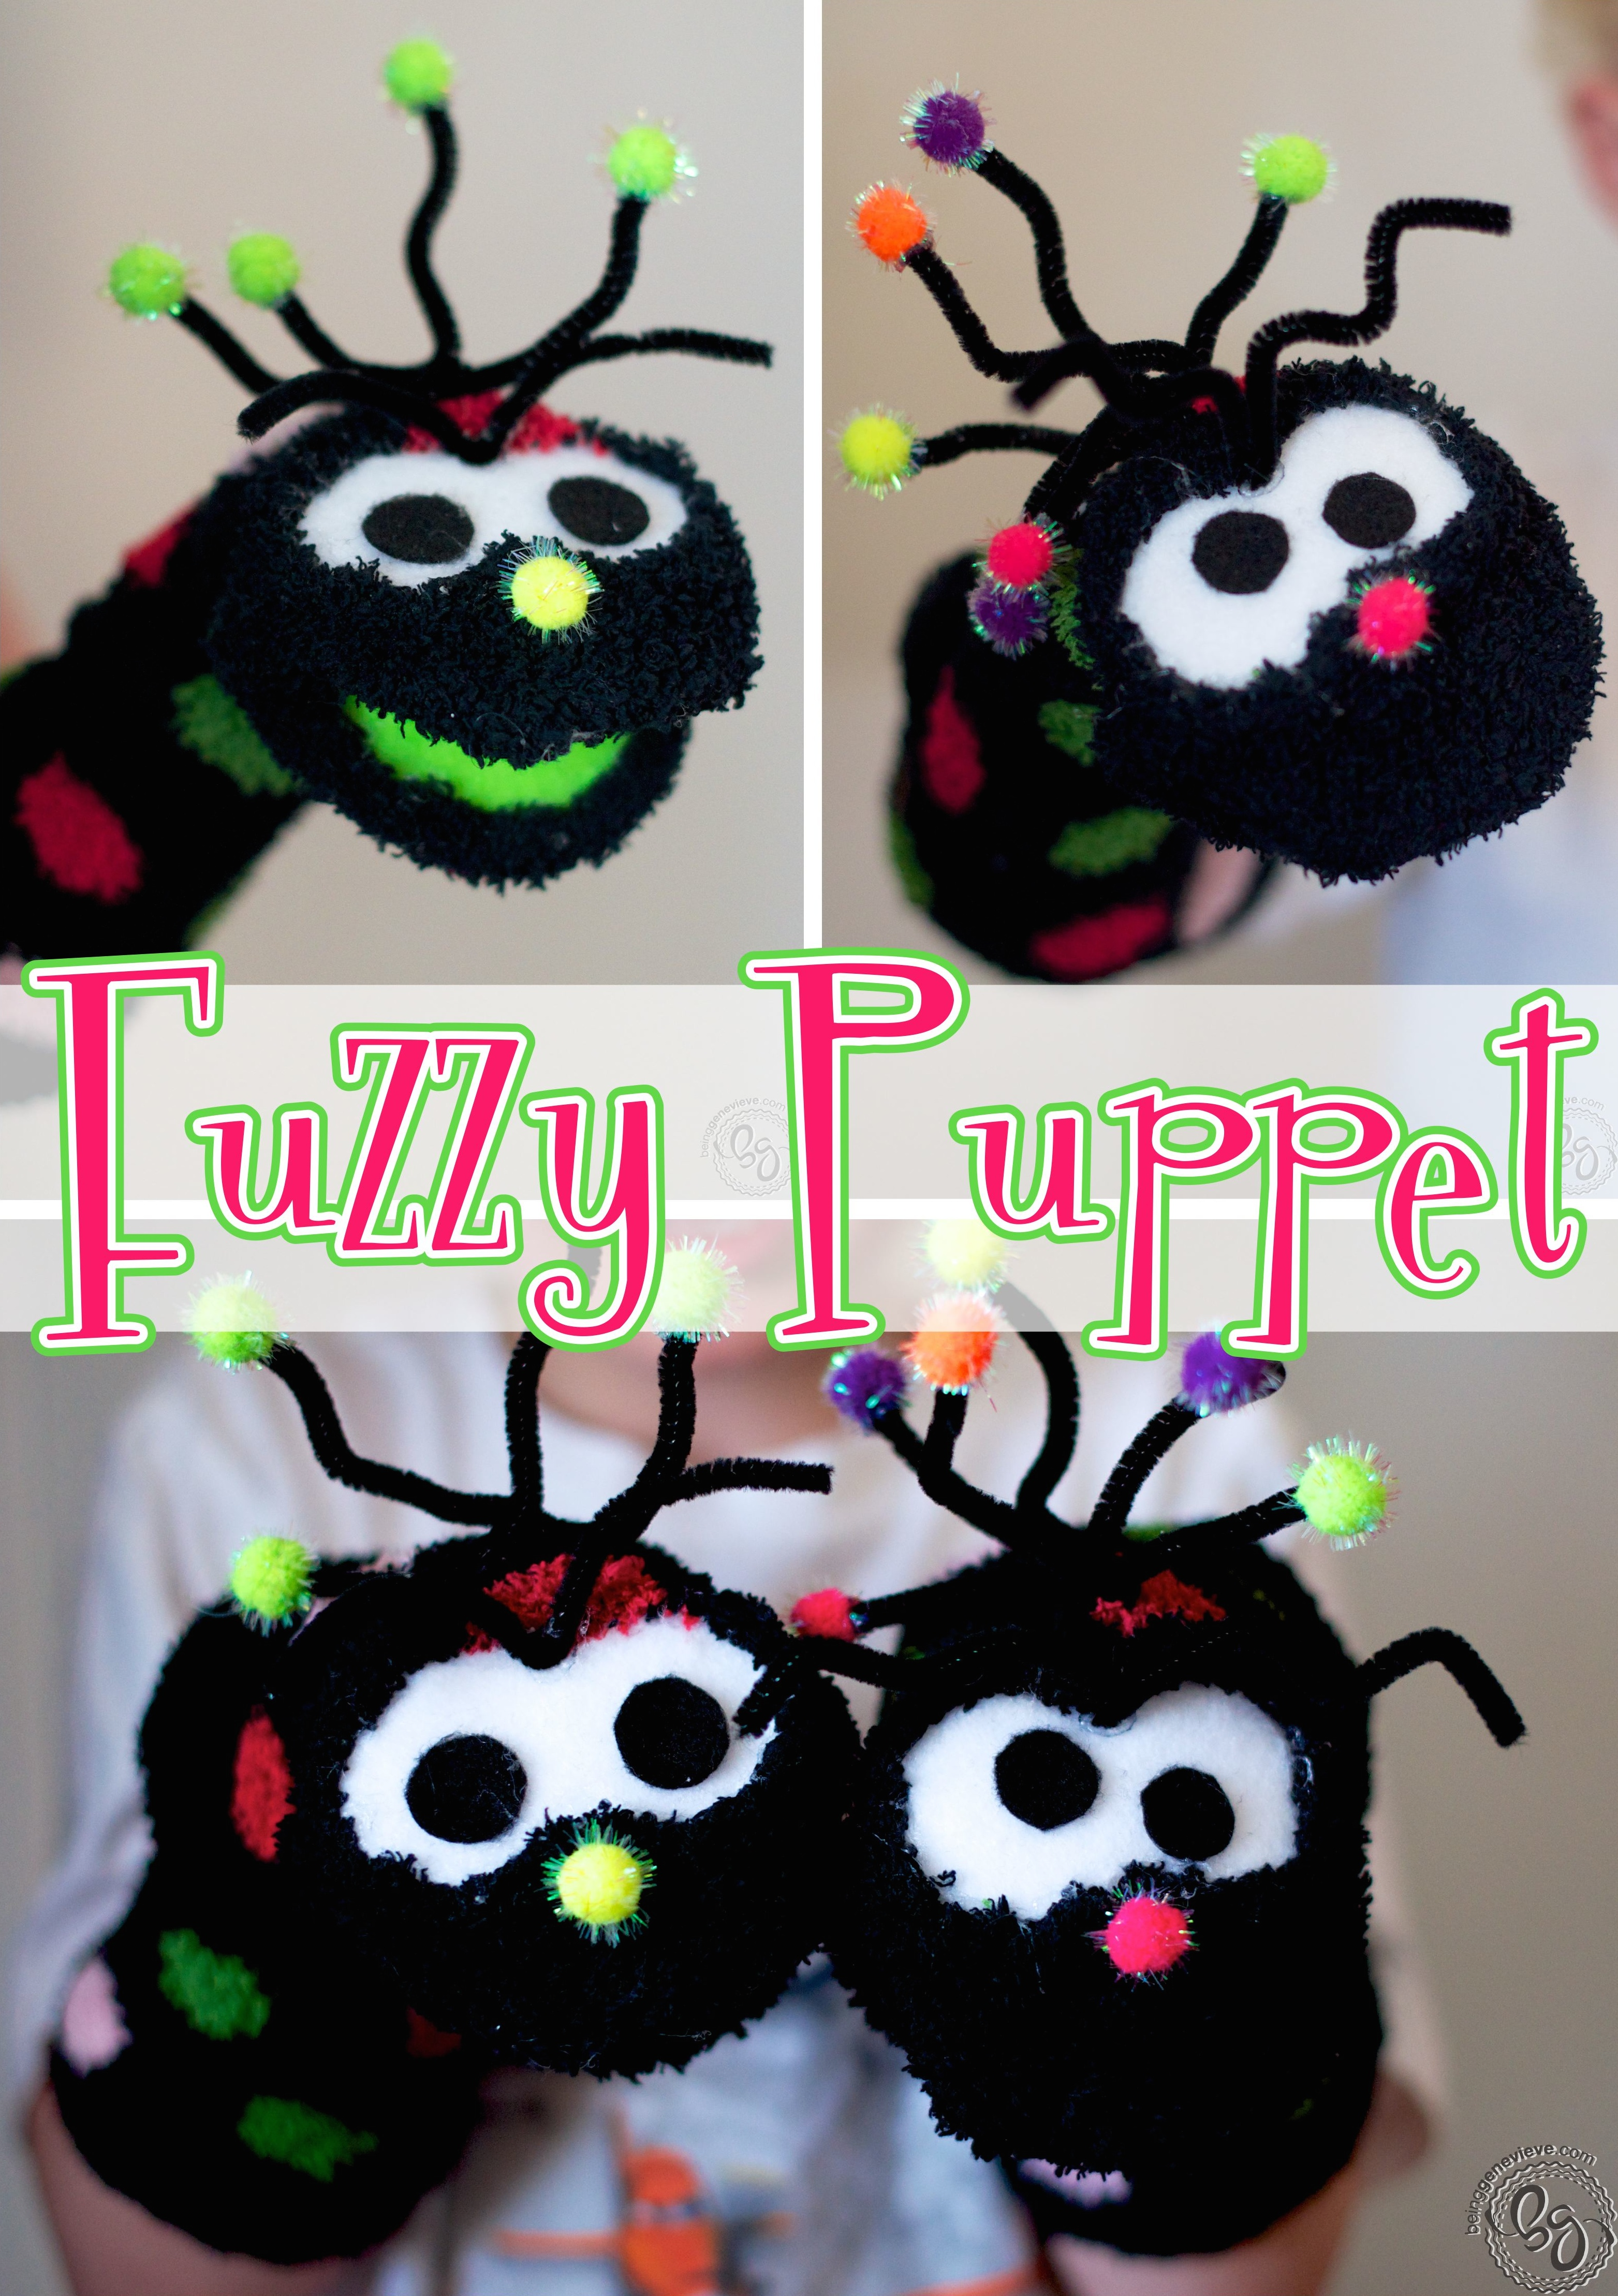 the fuzzy puppet being genevieve